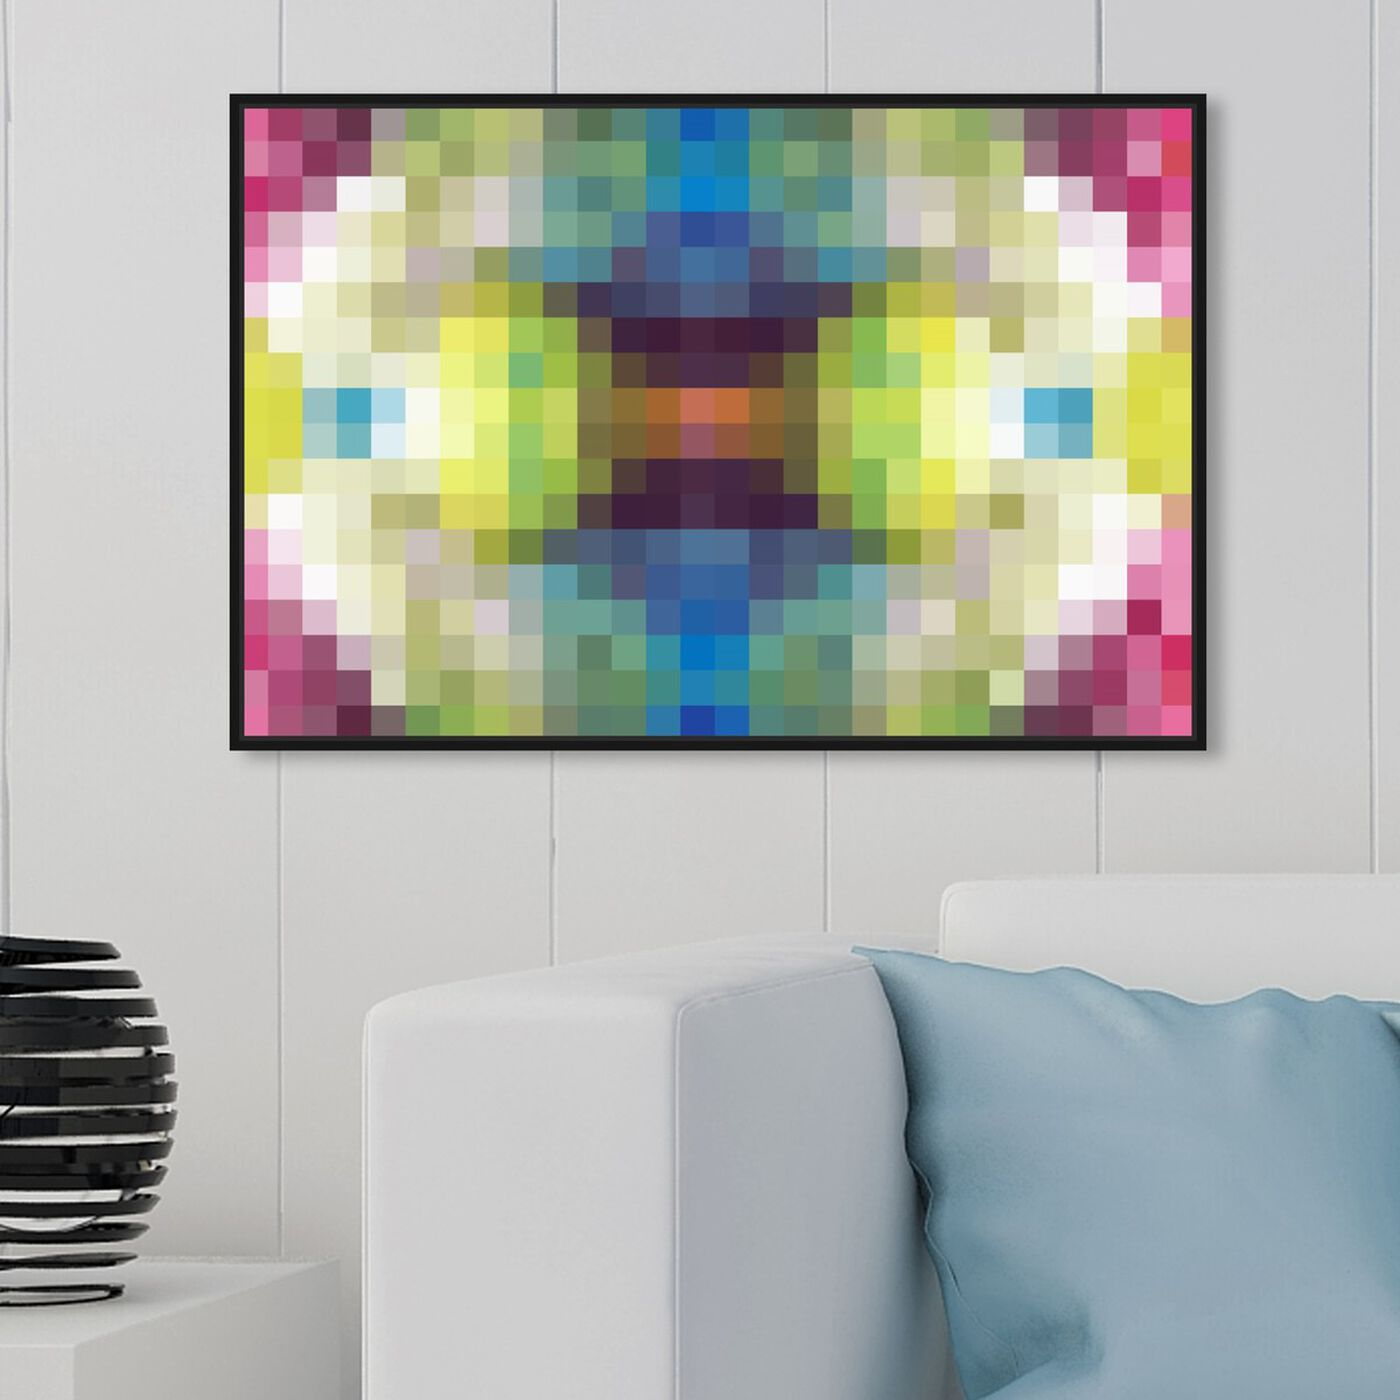 Hanging view of Candy Store Pixel featuring abstract and textures art.